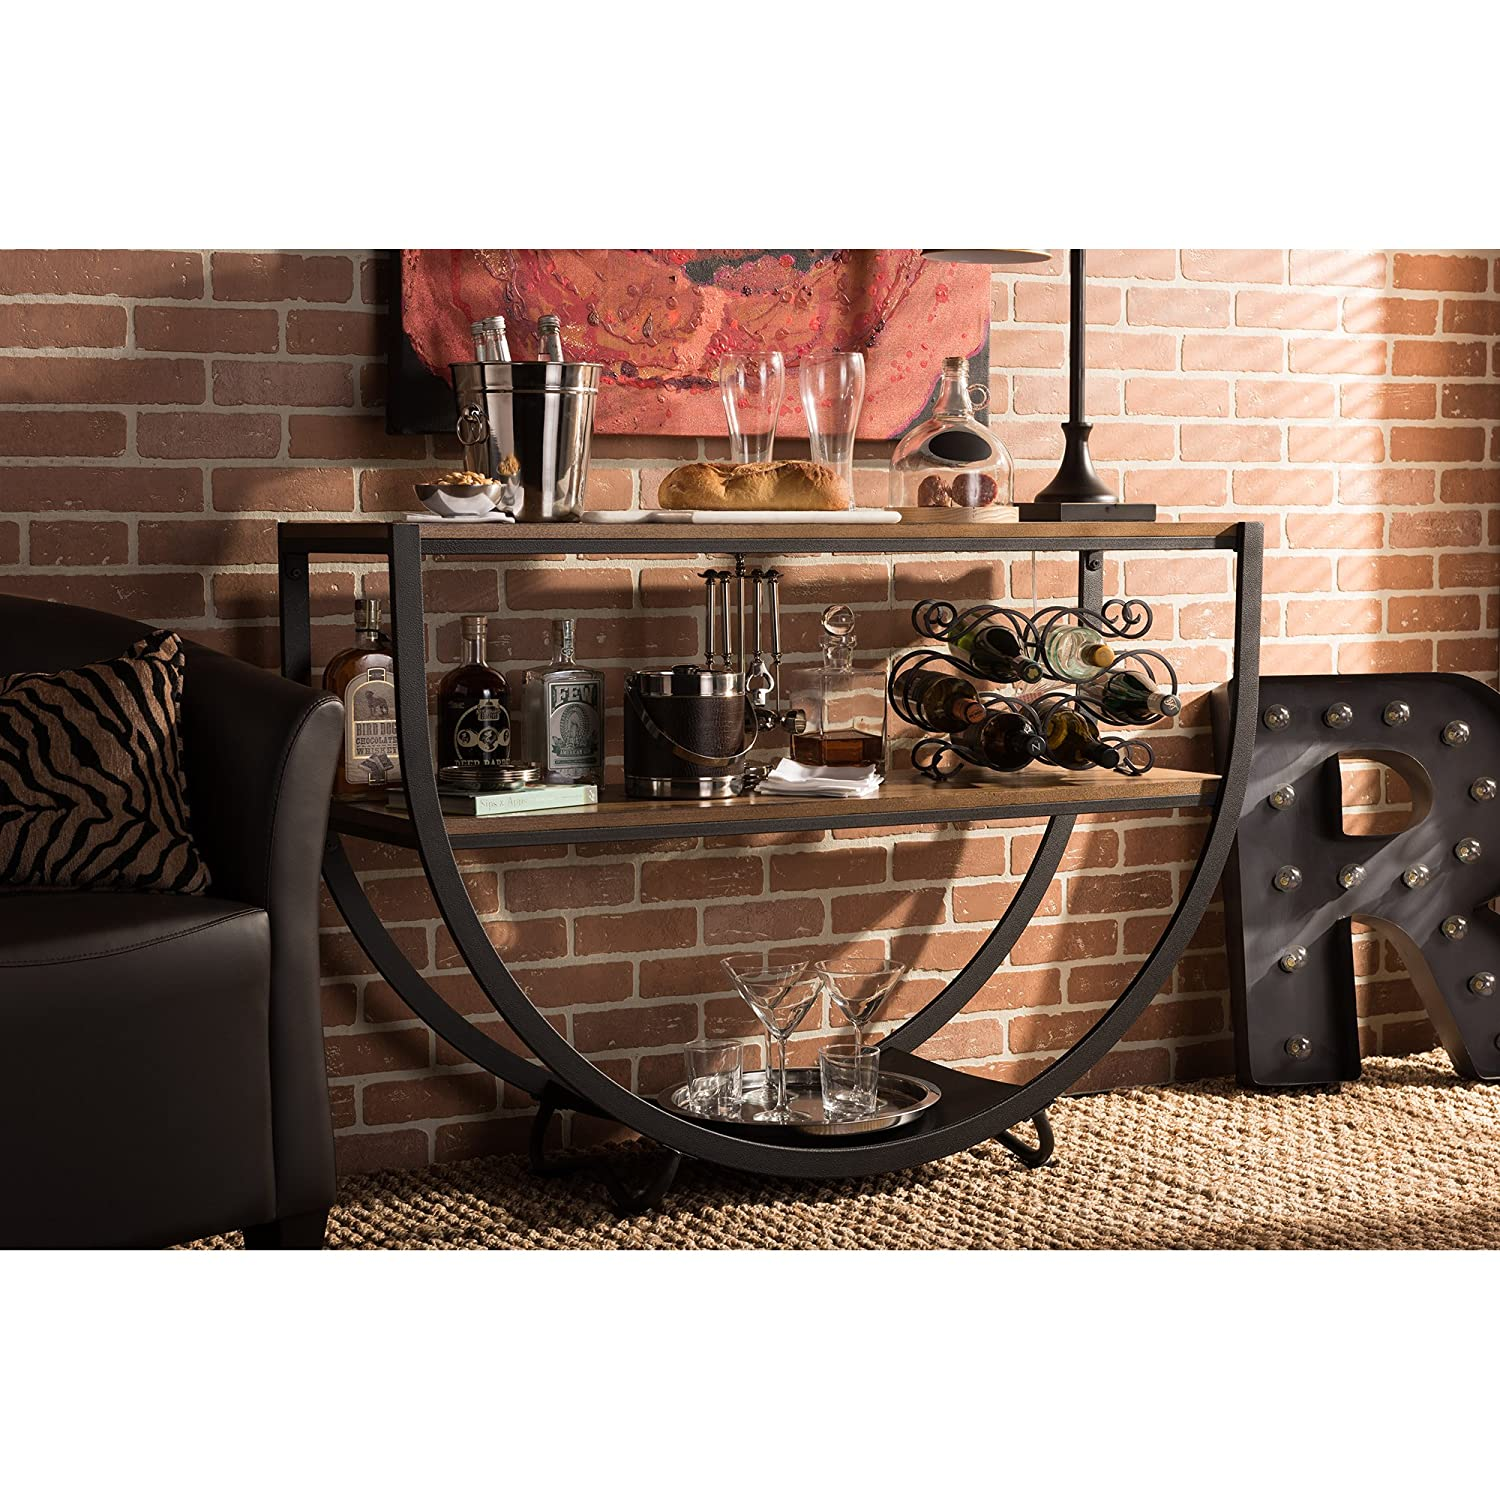 Amazon.com: Baxton Studio Blakes Rustic Industrial Style Antique Textured  Metal Distressed Wood Console Table, Black: Kitchen U0026 Dining